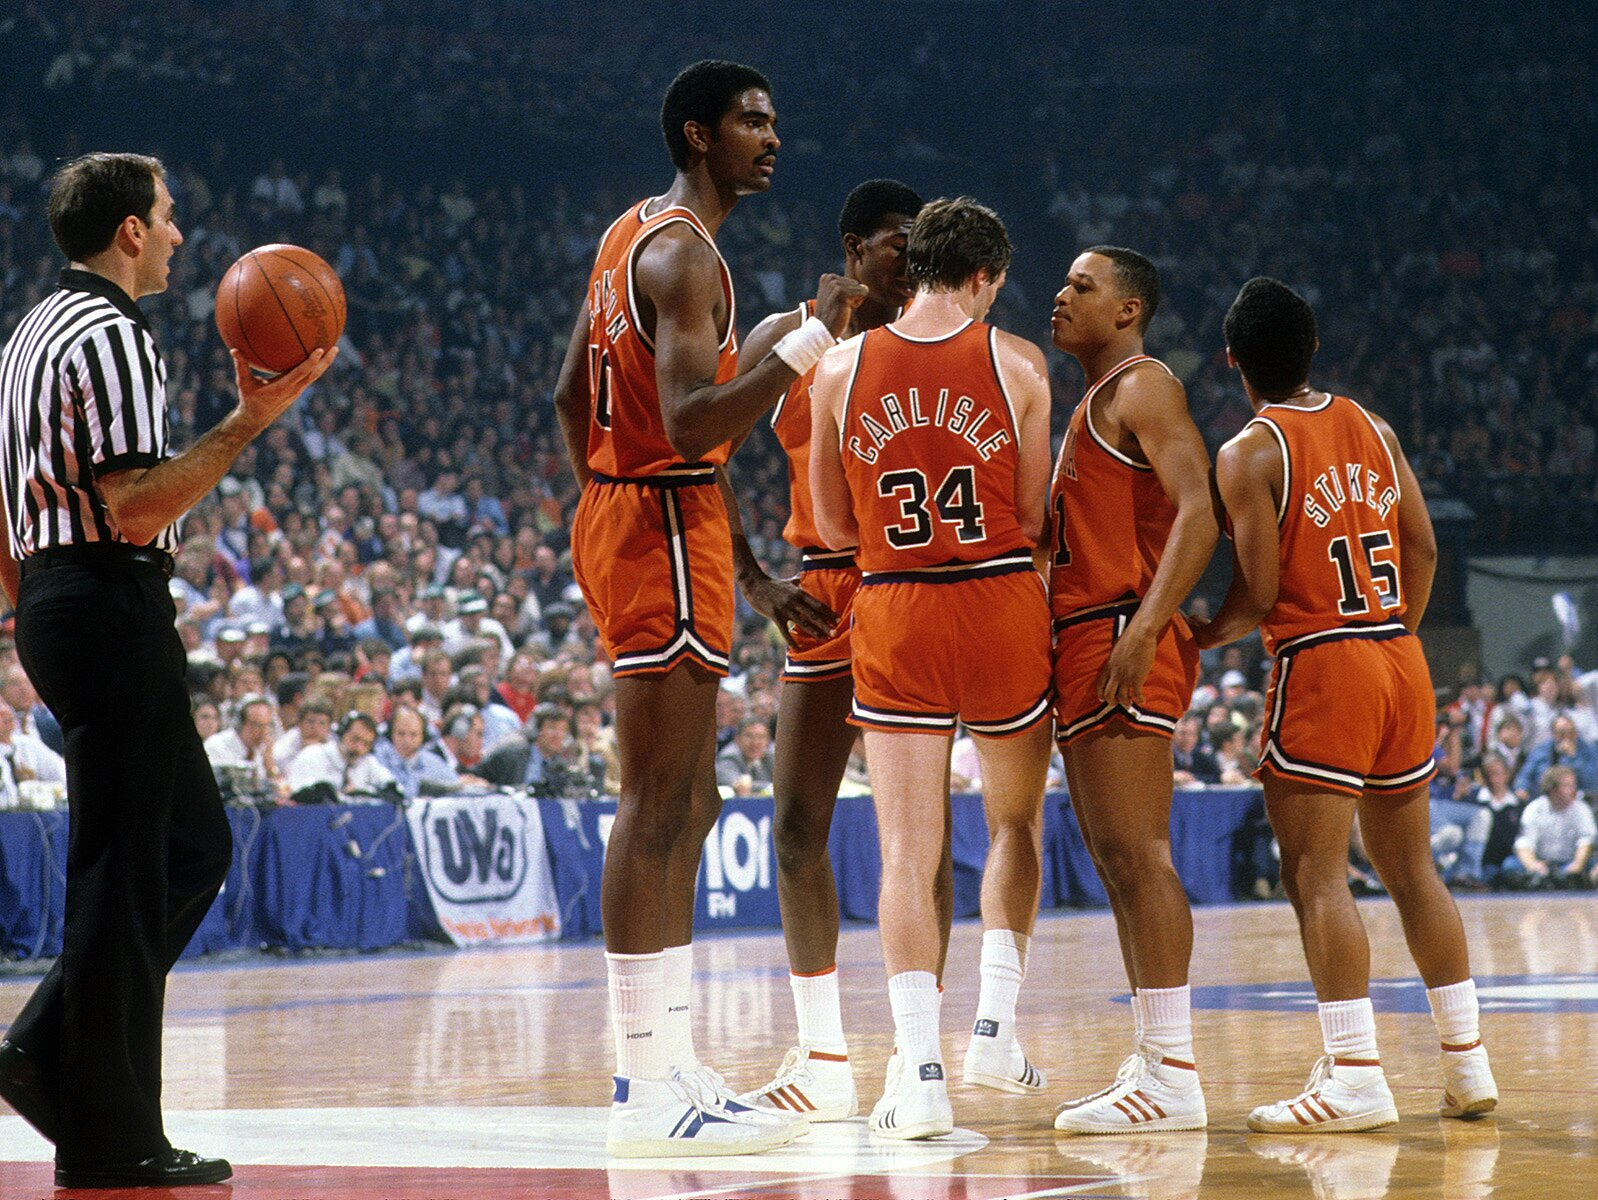 Ralph Sampson: Final Four time to reflect on Virginia legend